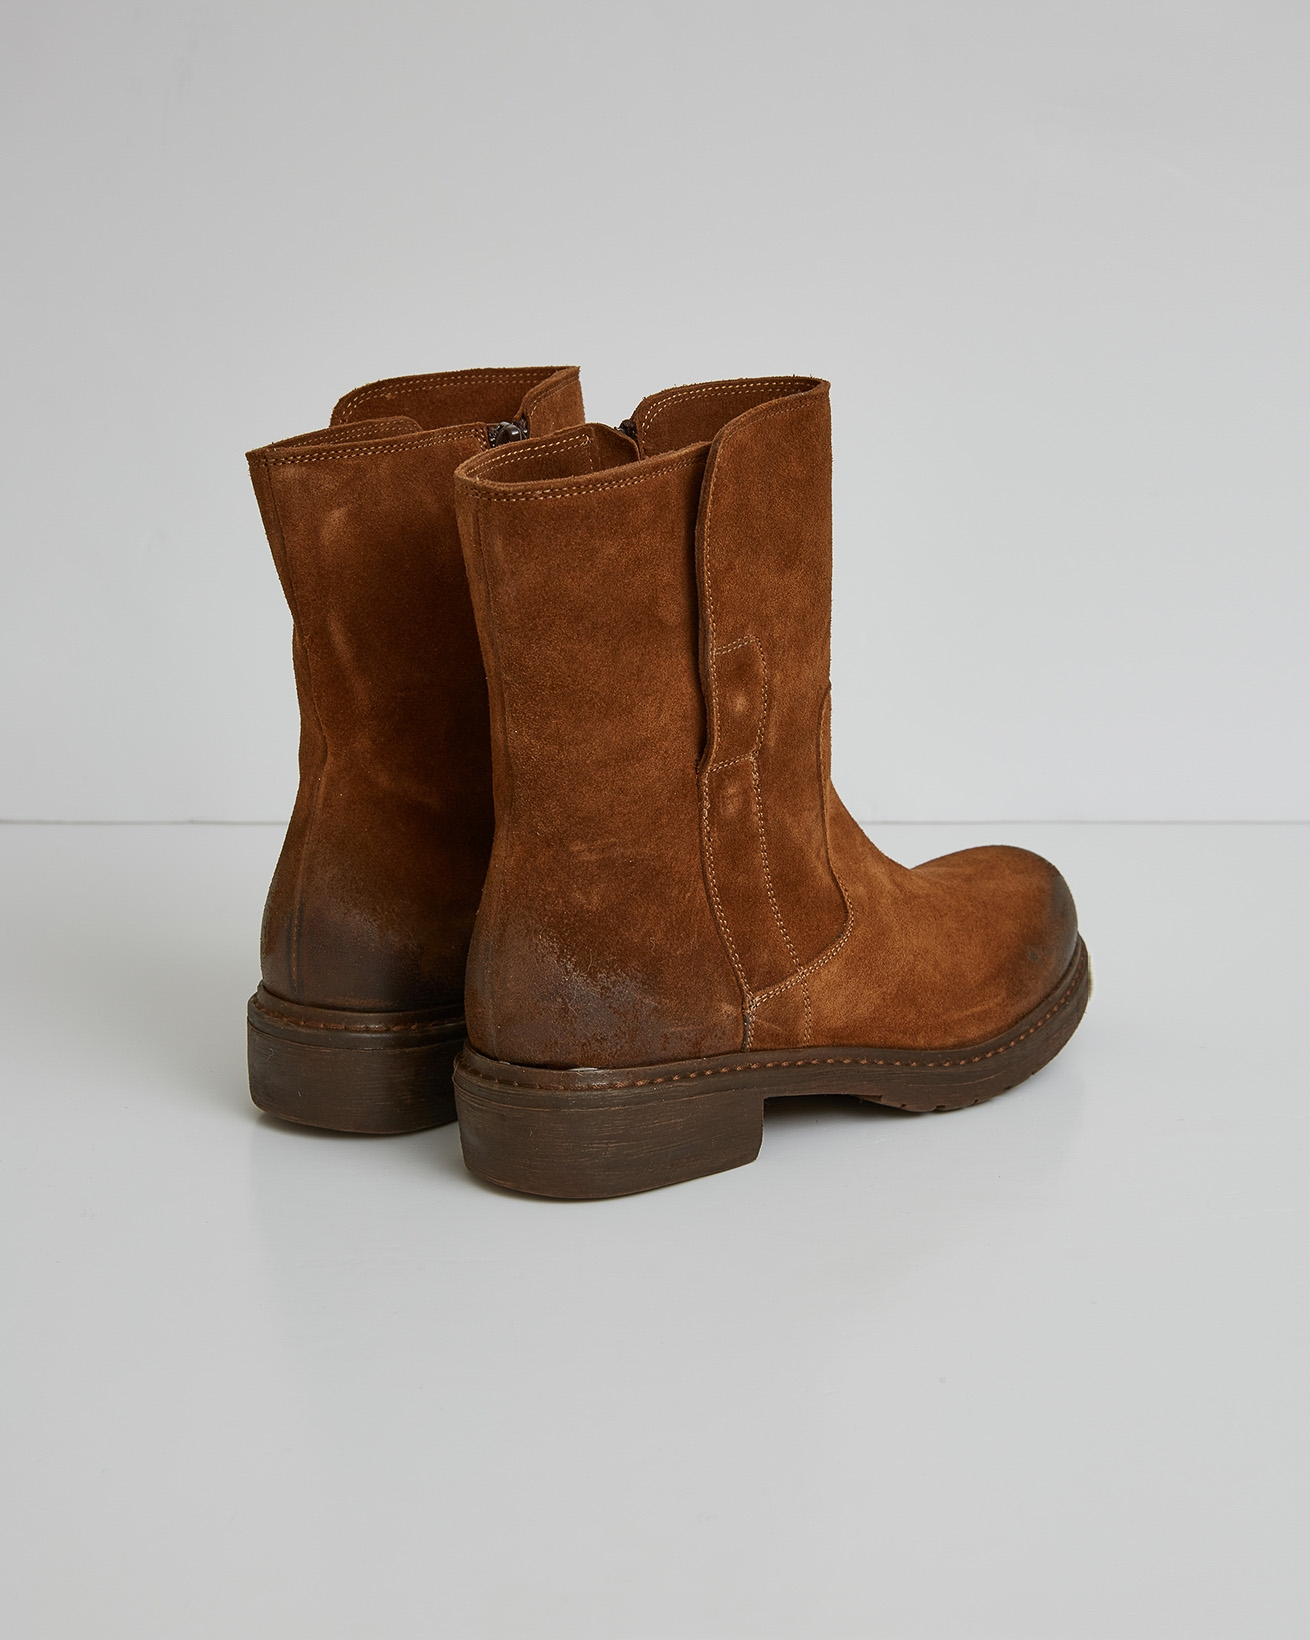 2770-essential leather ankle boot - cinnamon - size 37 -back.jpg